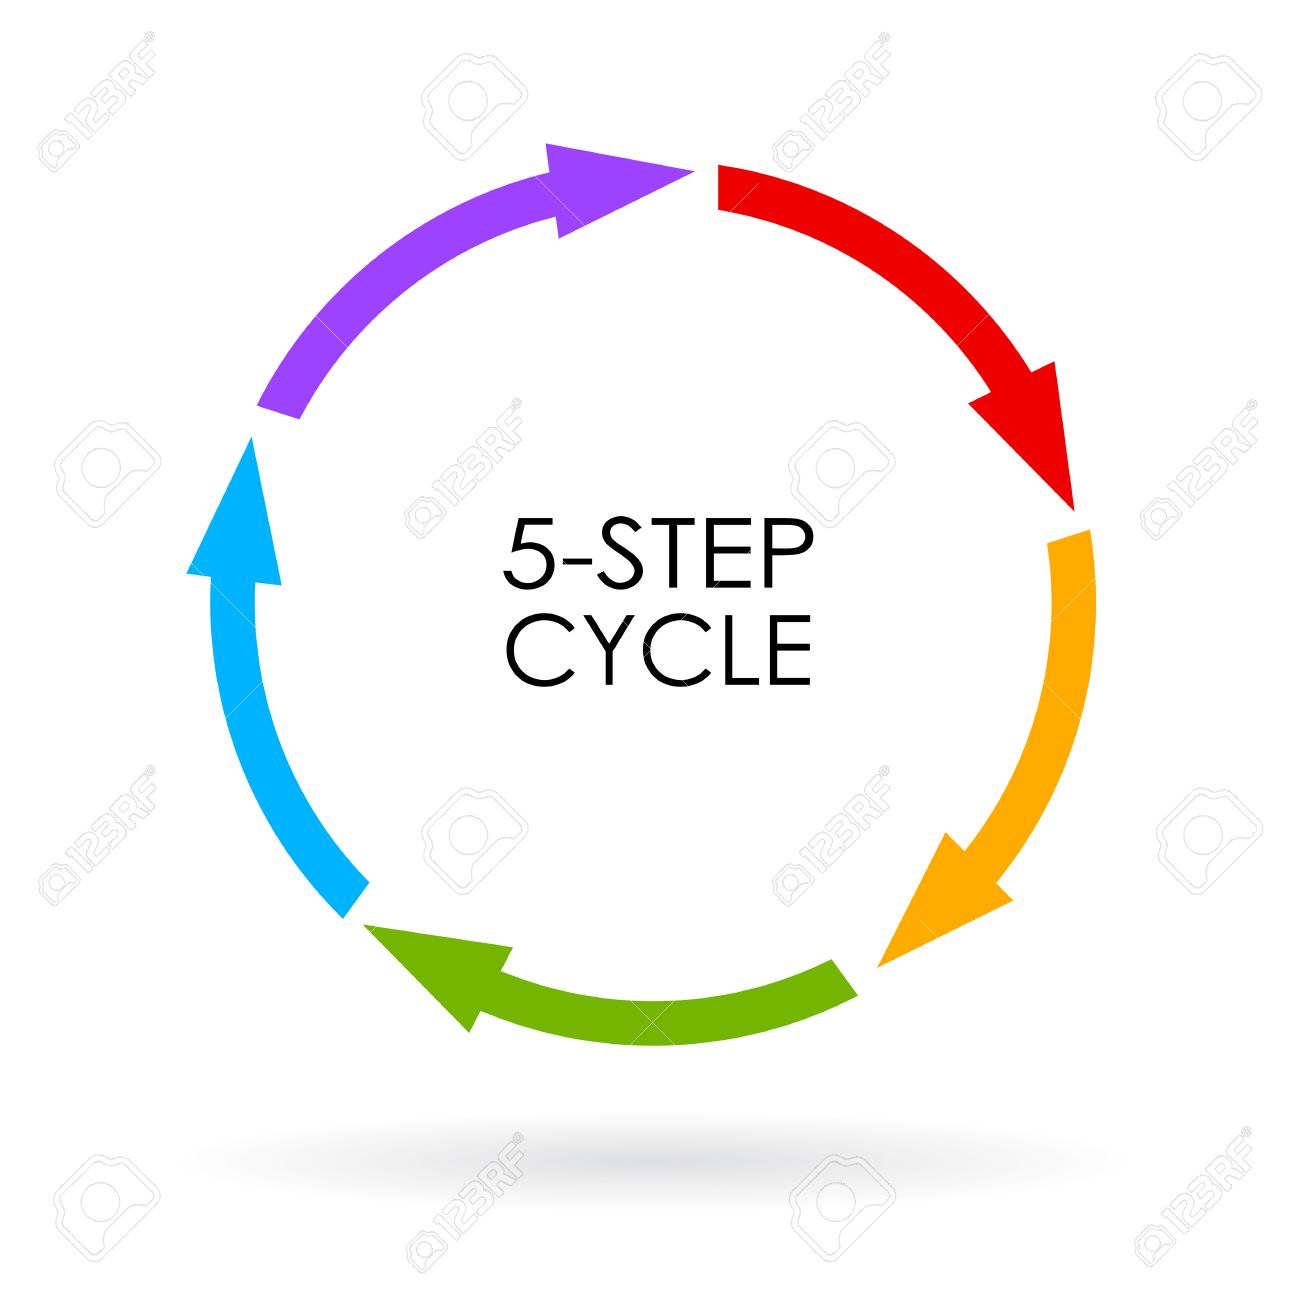 5 step arrows cycle diagram royalty free cliparts vectors and 5 step arrows cycle diagram stock vector 55145534 ccuart